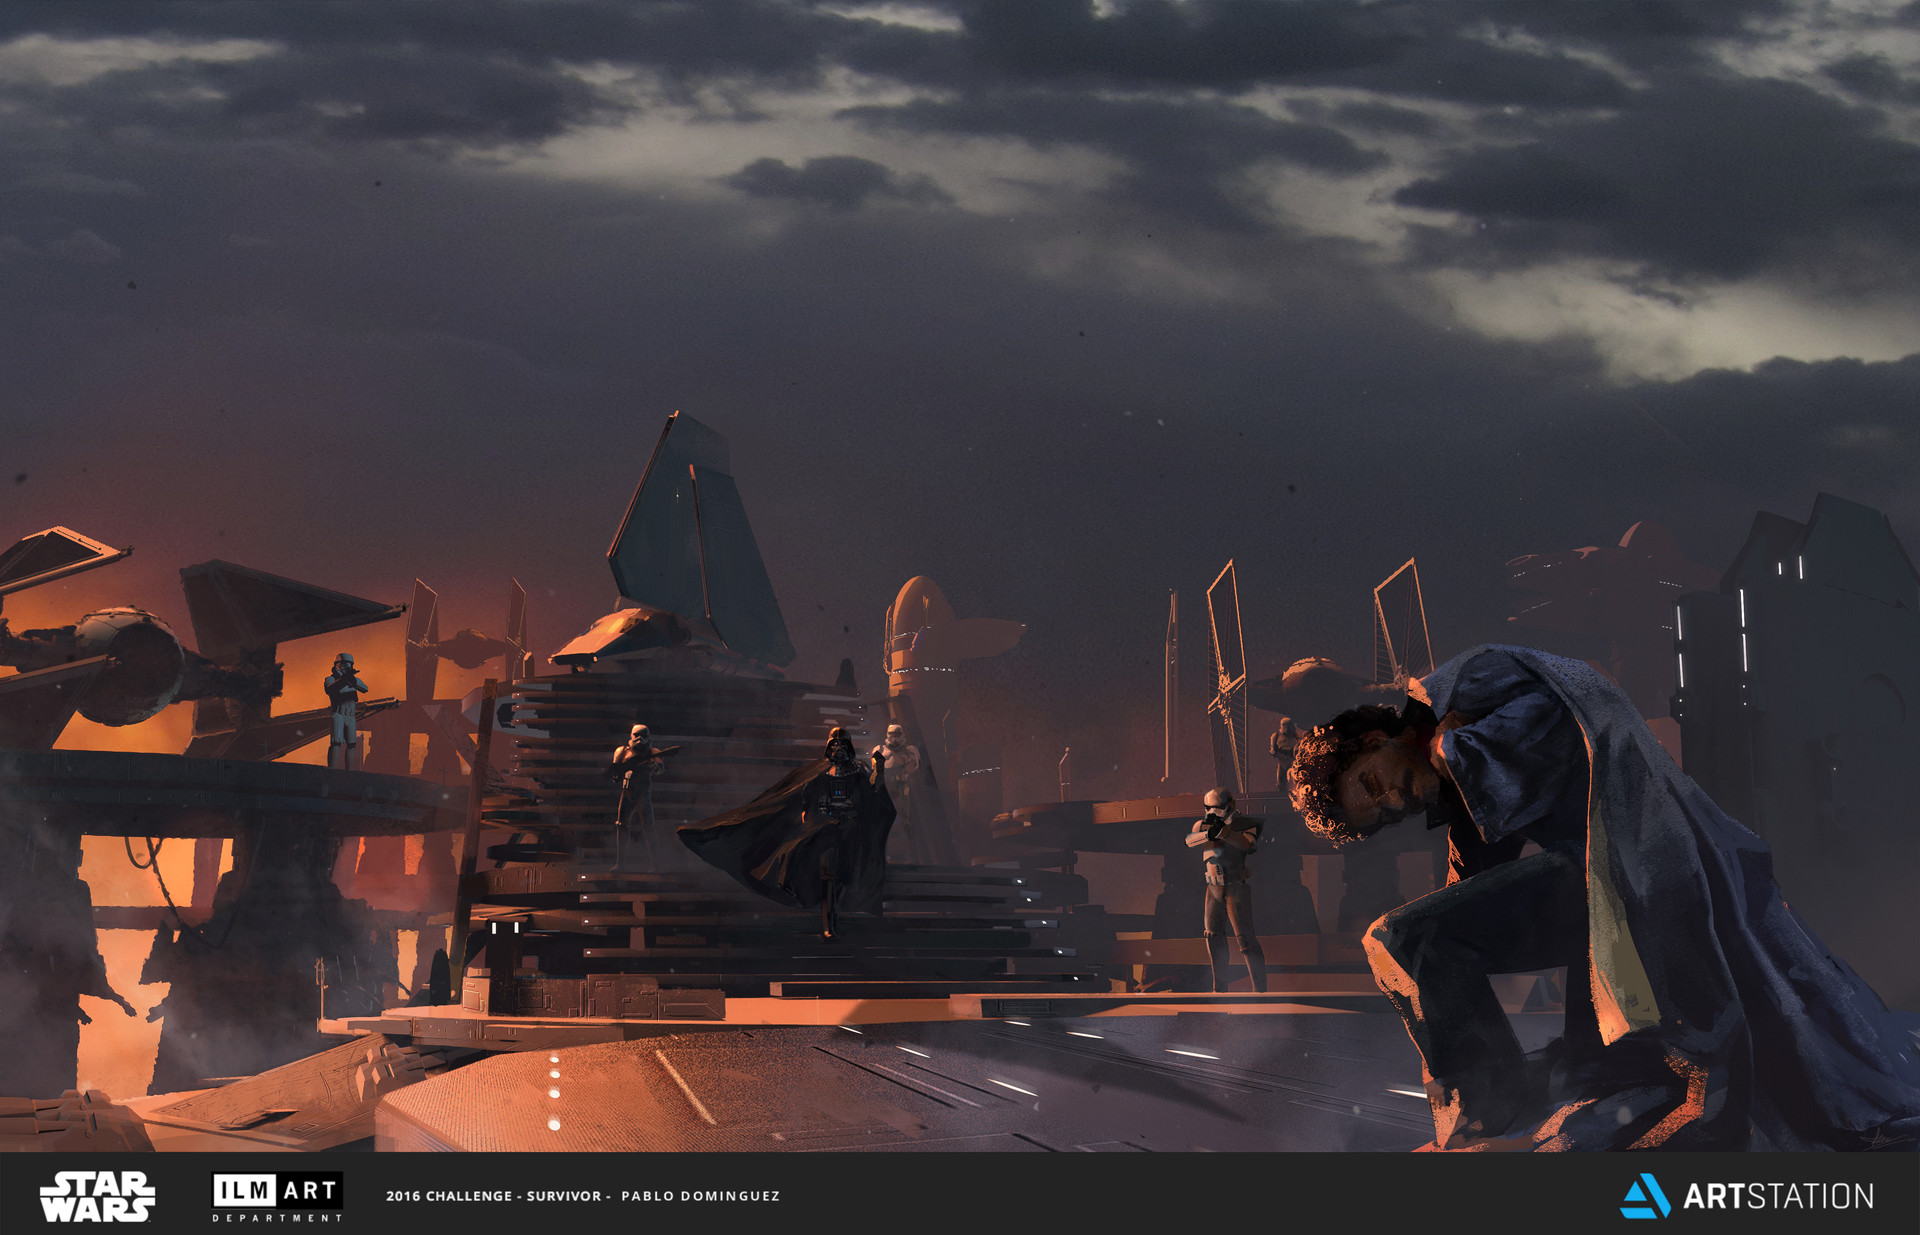 ILM Art Department - The Moment